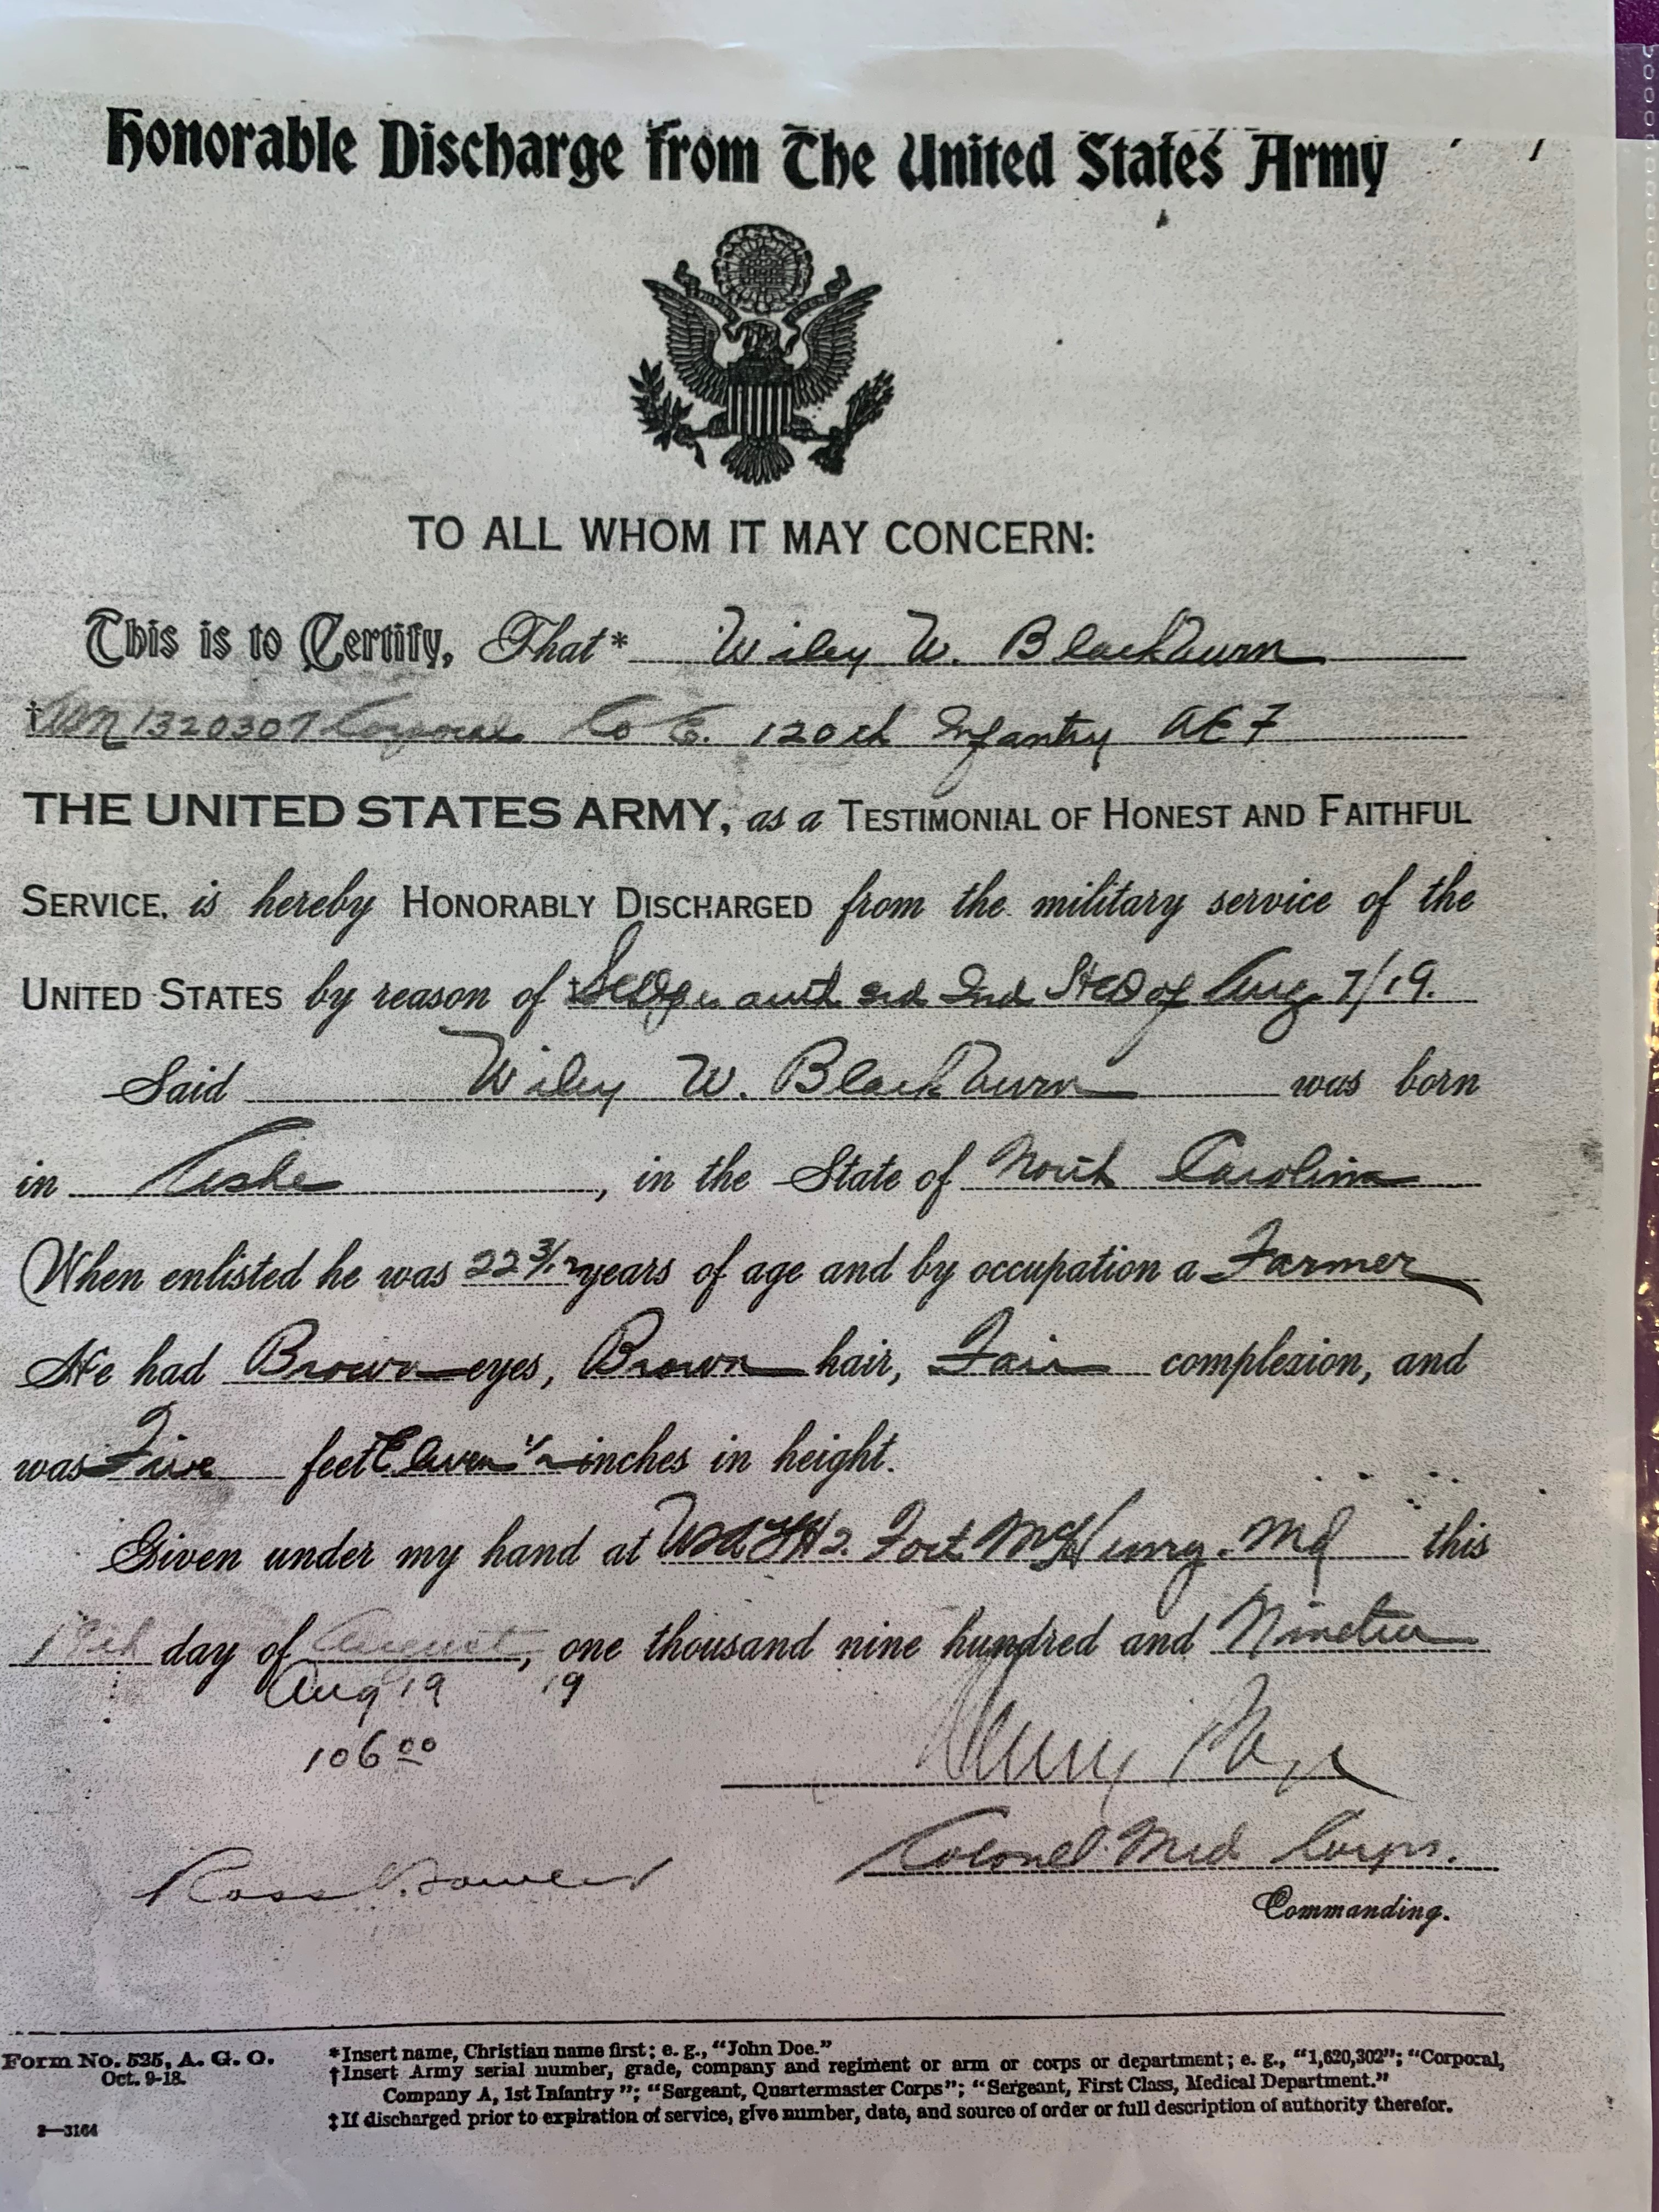 Webb's honorable discharge papers